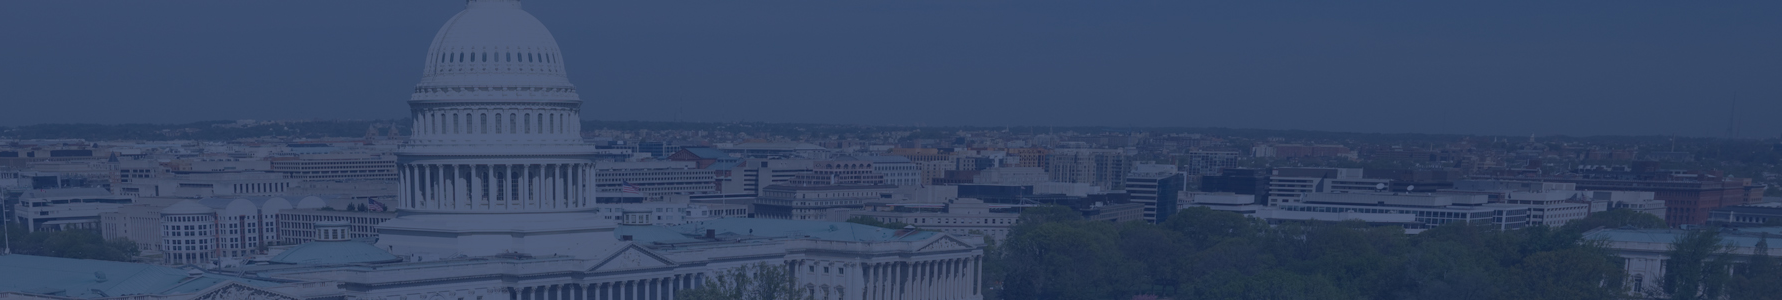 Header Image of Capitol